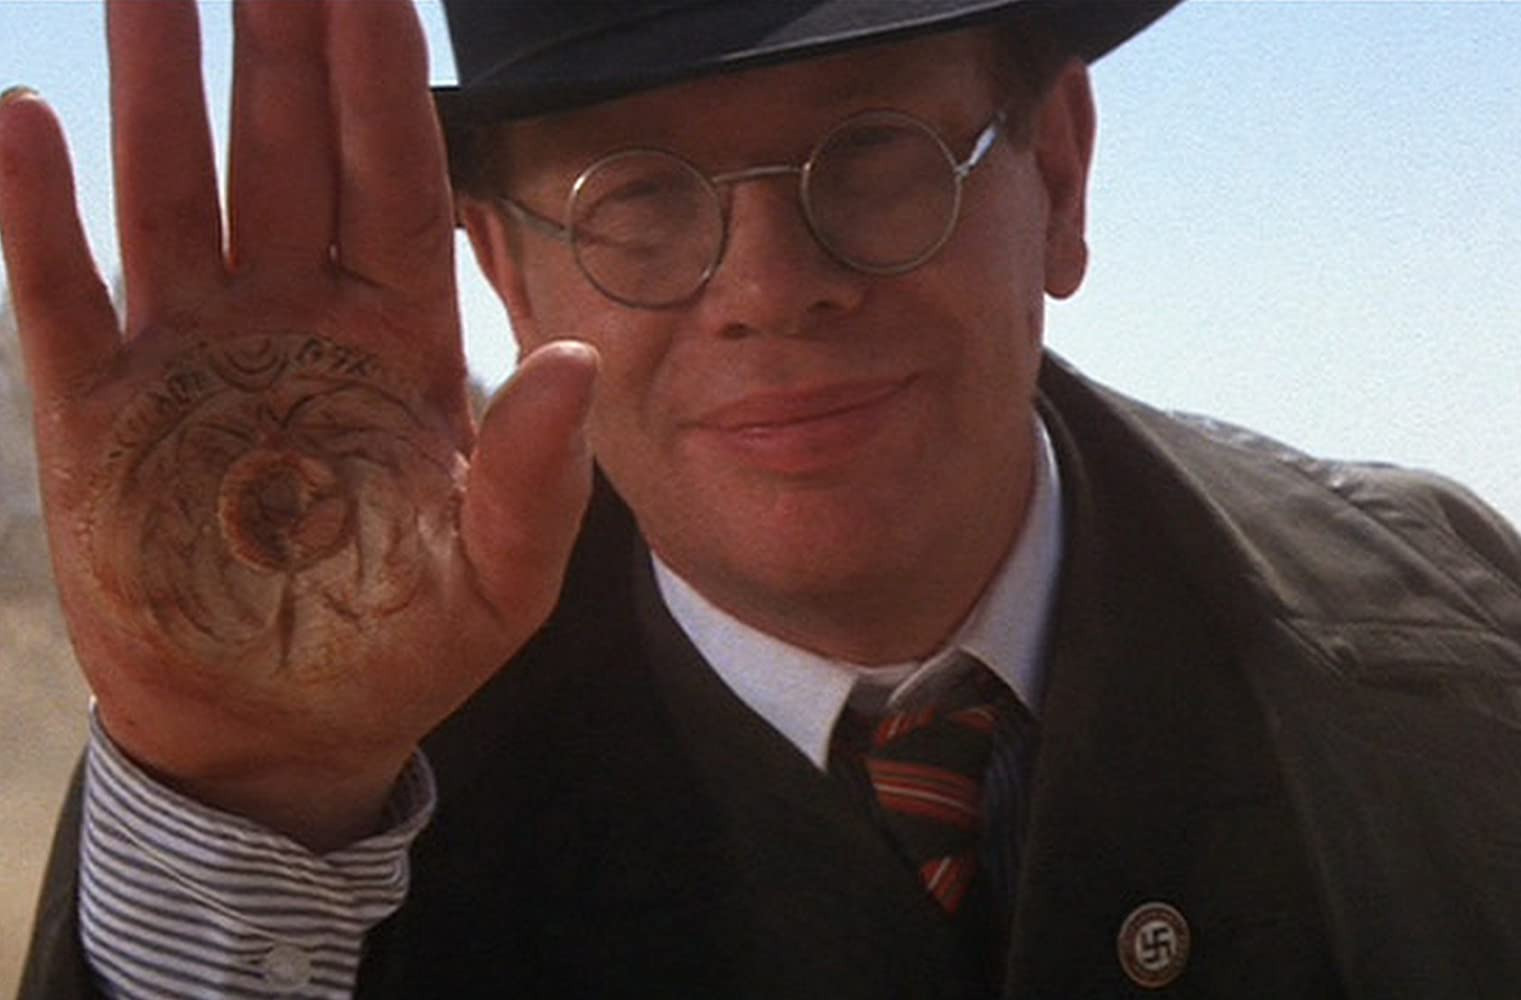 Ronald Lacey in Raiders of the Lost Ark (1981)